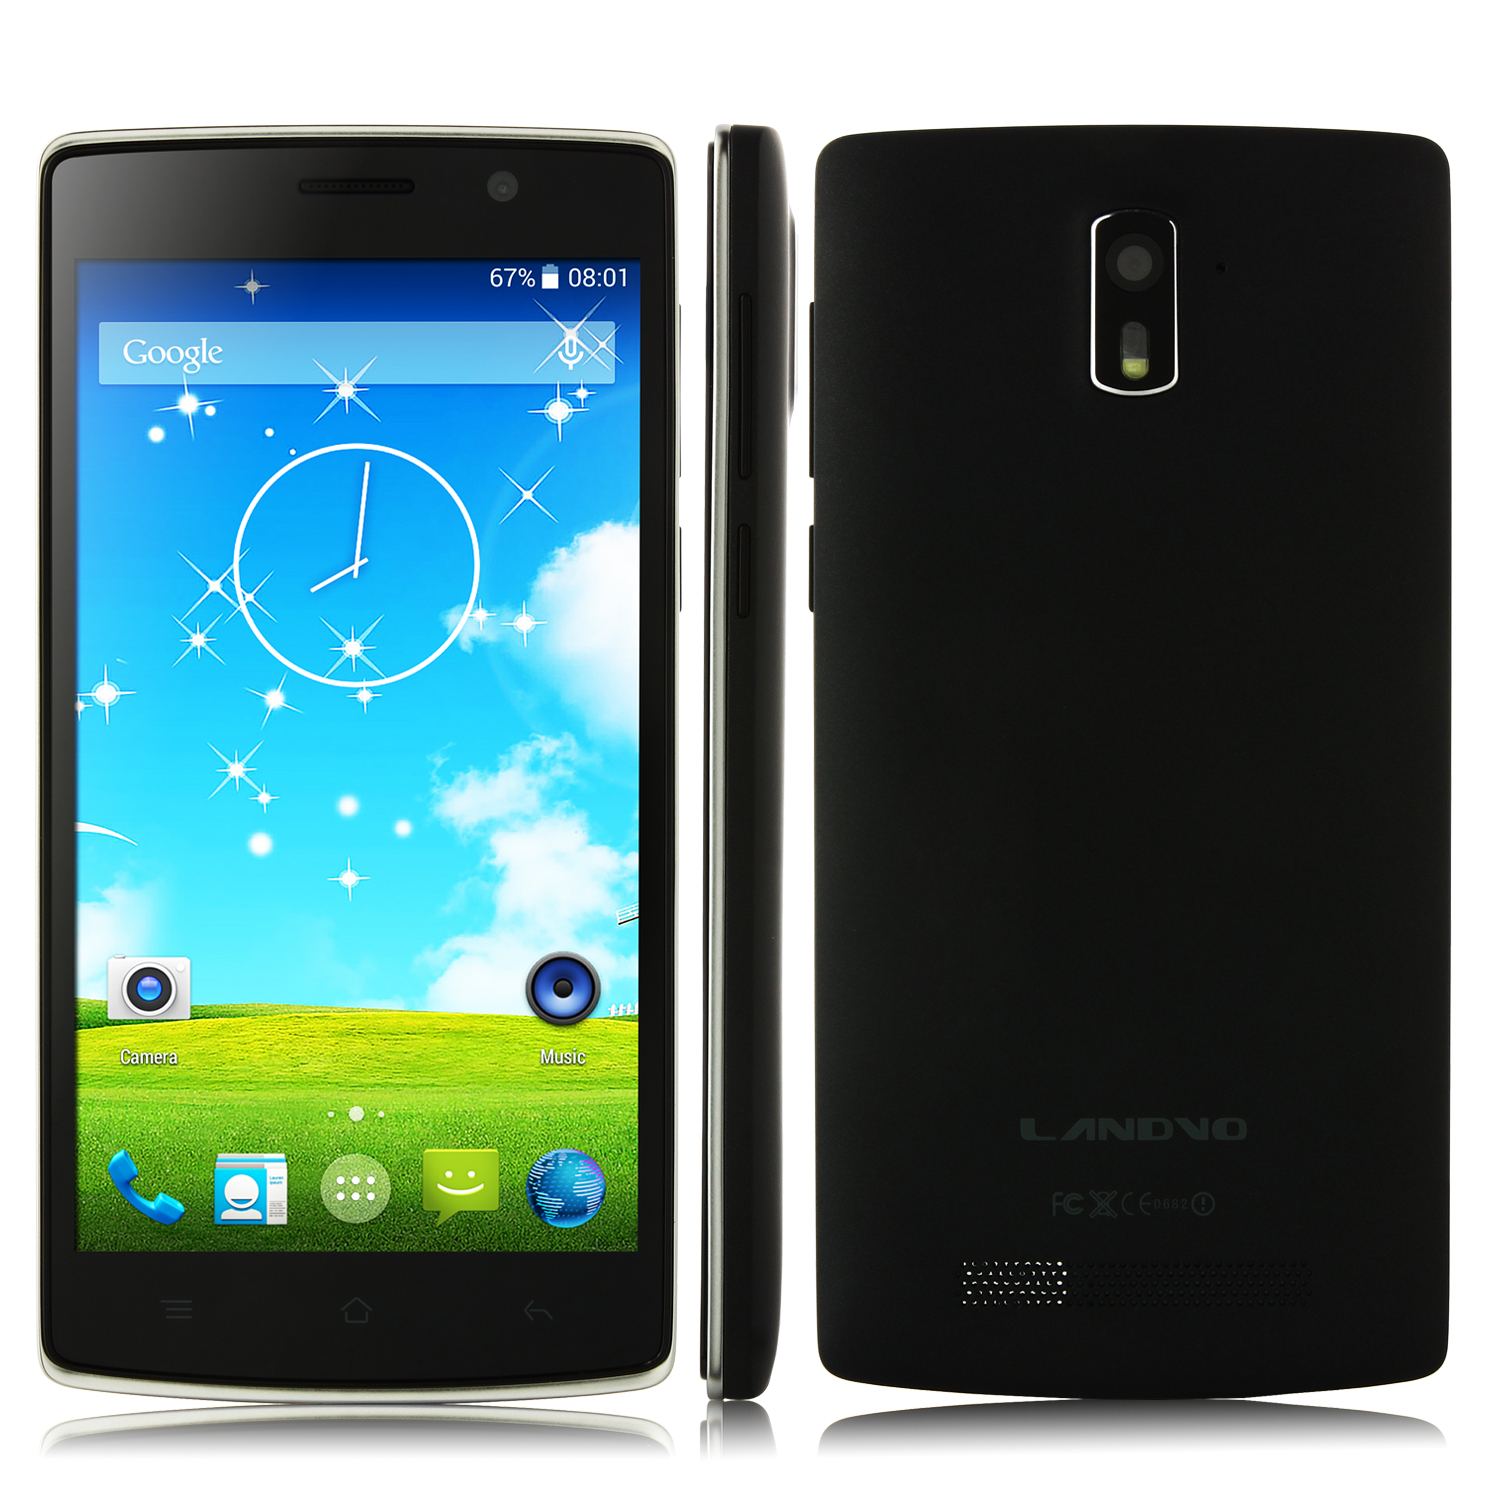 LANDVO L200S Smartphone 4G LTE Android 4.4 MTK6582 Quad Core 5.0 Inch HD Screen Black